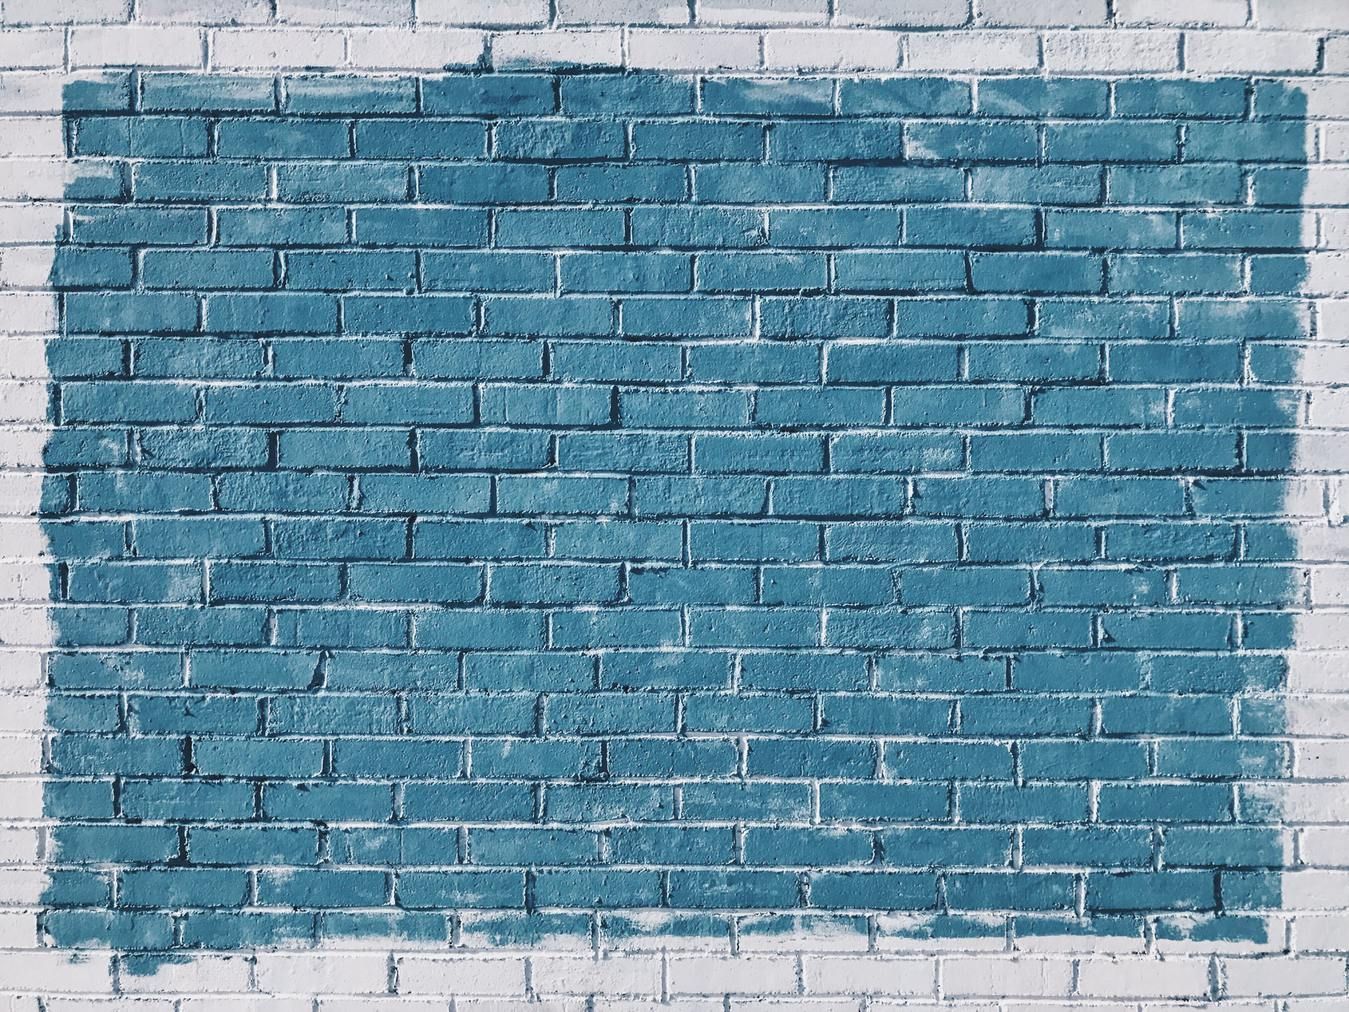 Brick Wall White Border and Blue Inside